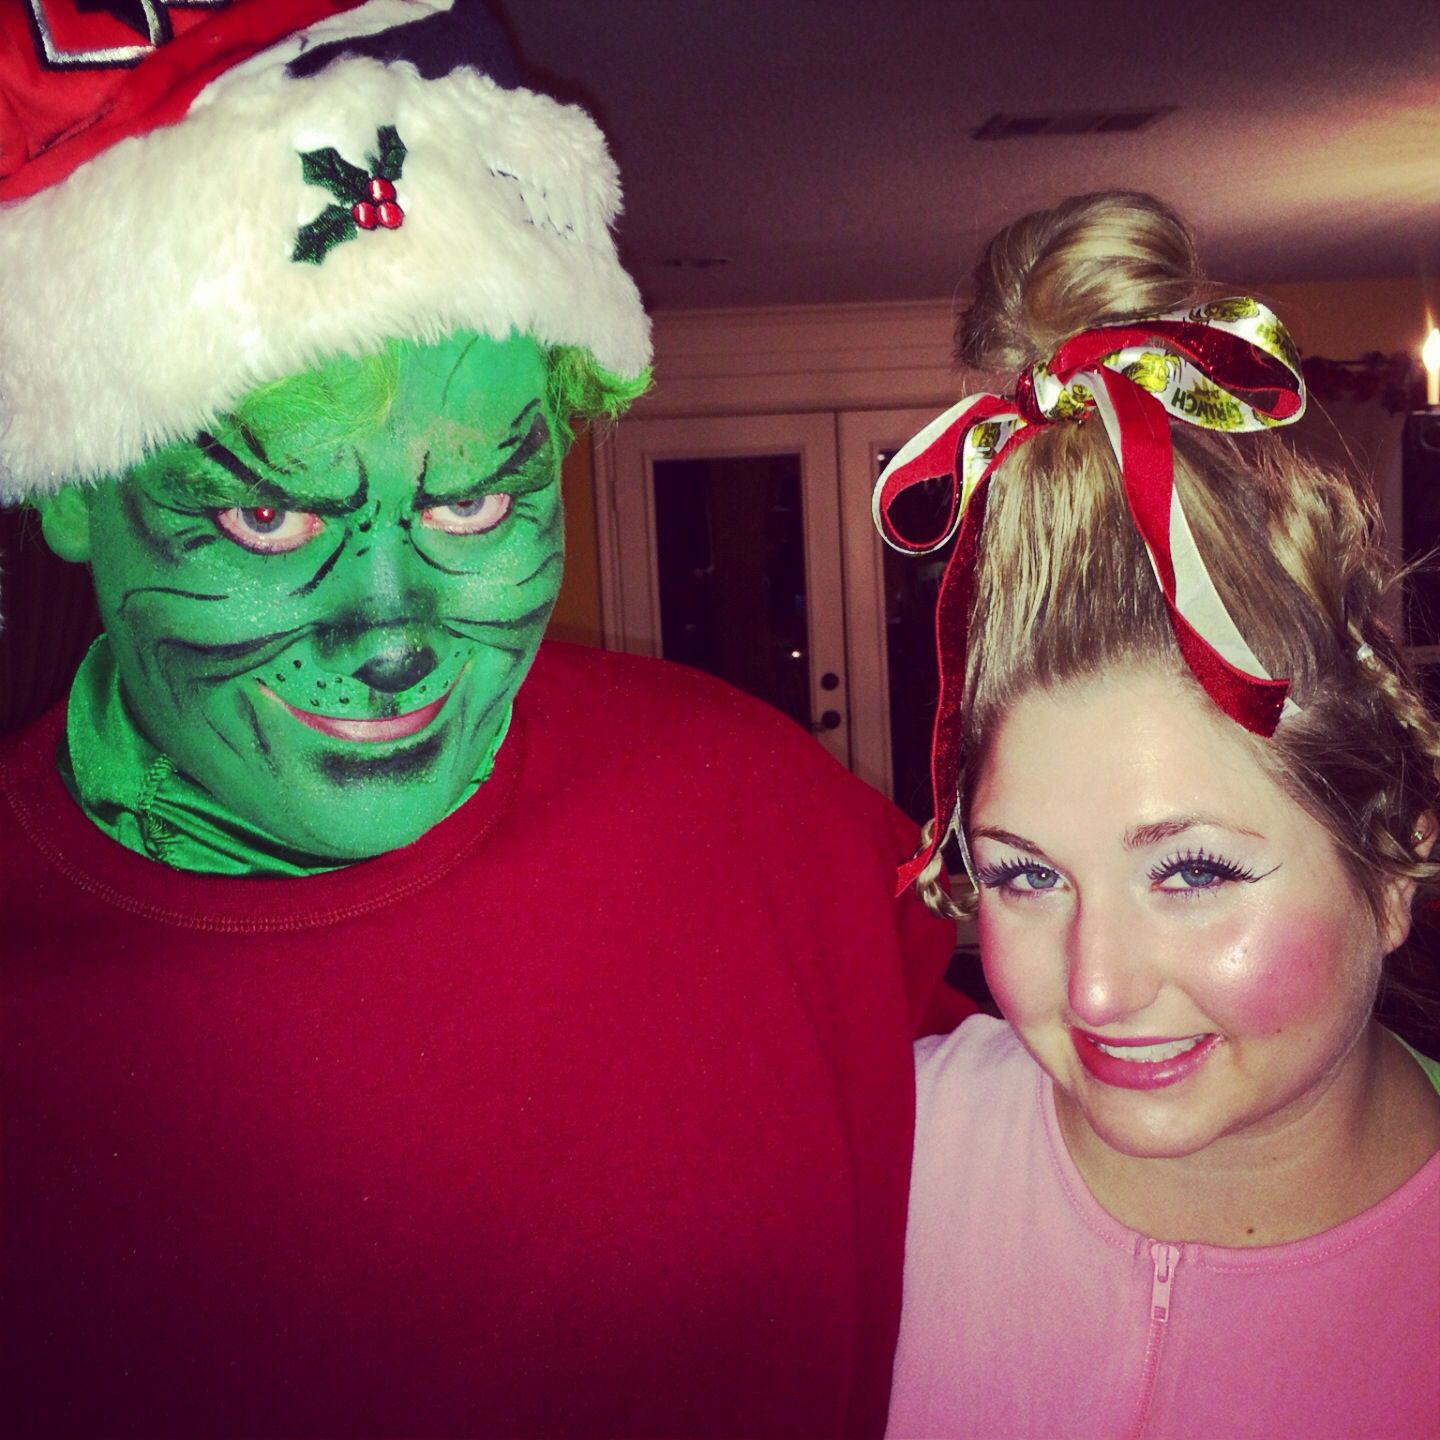 The Grinch and Cindy Lou Who Halloween costumes!  sc 1 st  Pinterest & The Grinch and Cindy Lou Who Halloween costumes! | Christmas ...